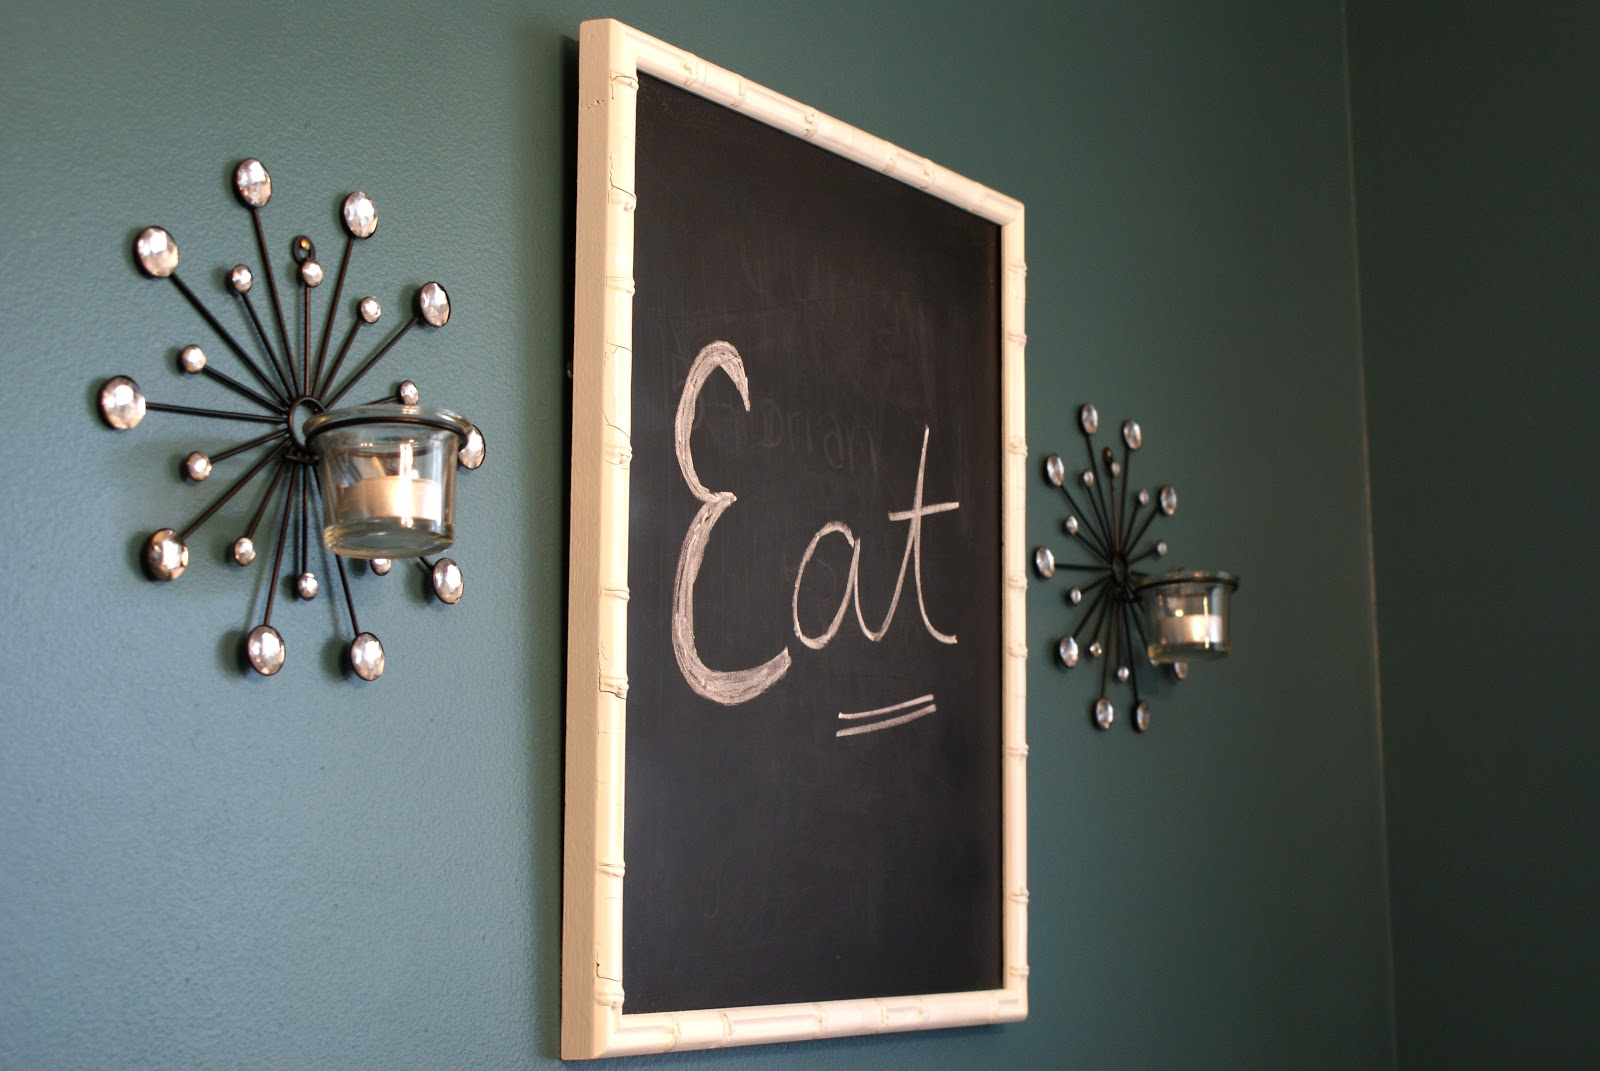 Nikkis' Nacs: A Little Bling For The Dining Room